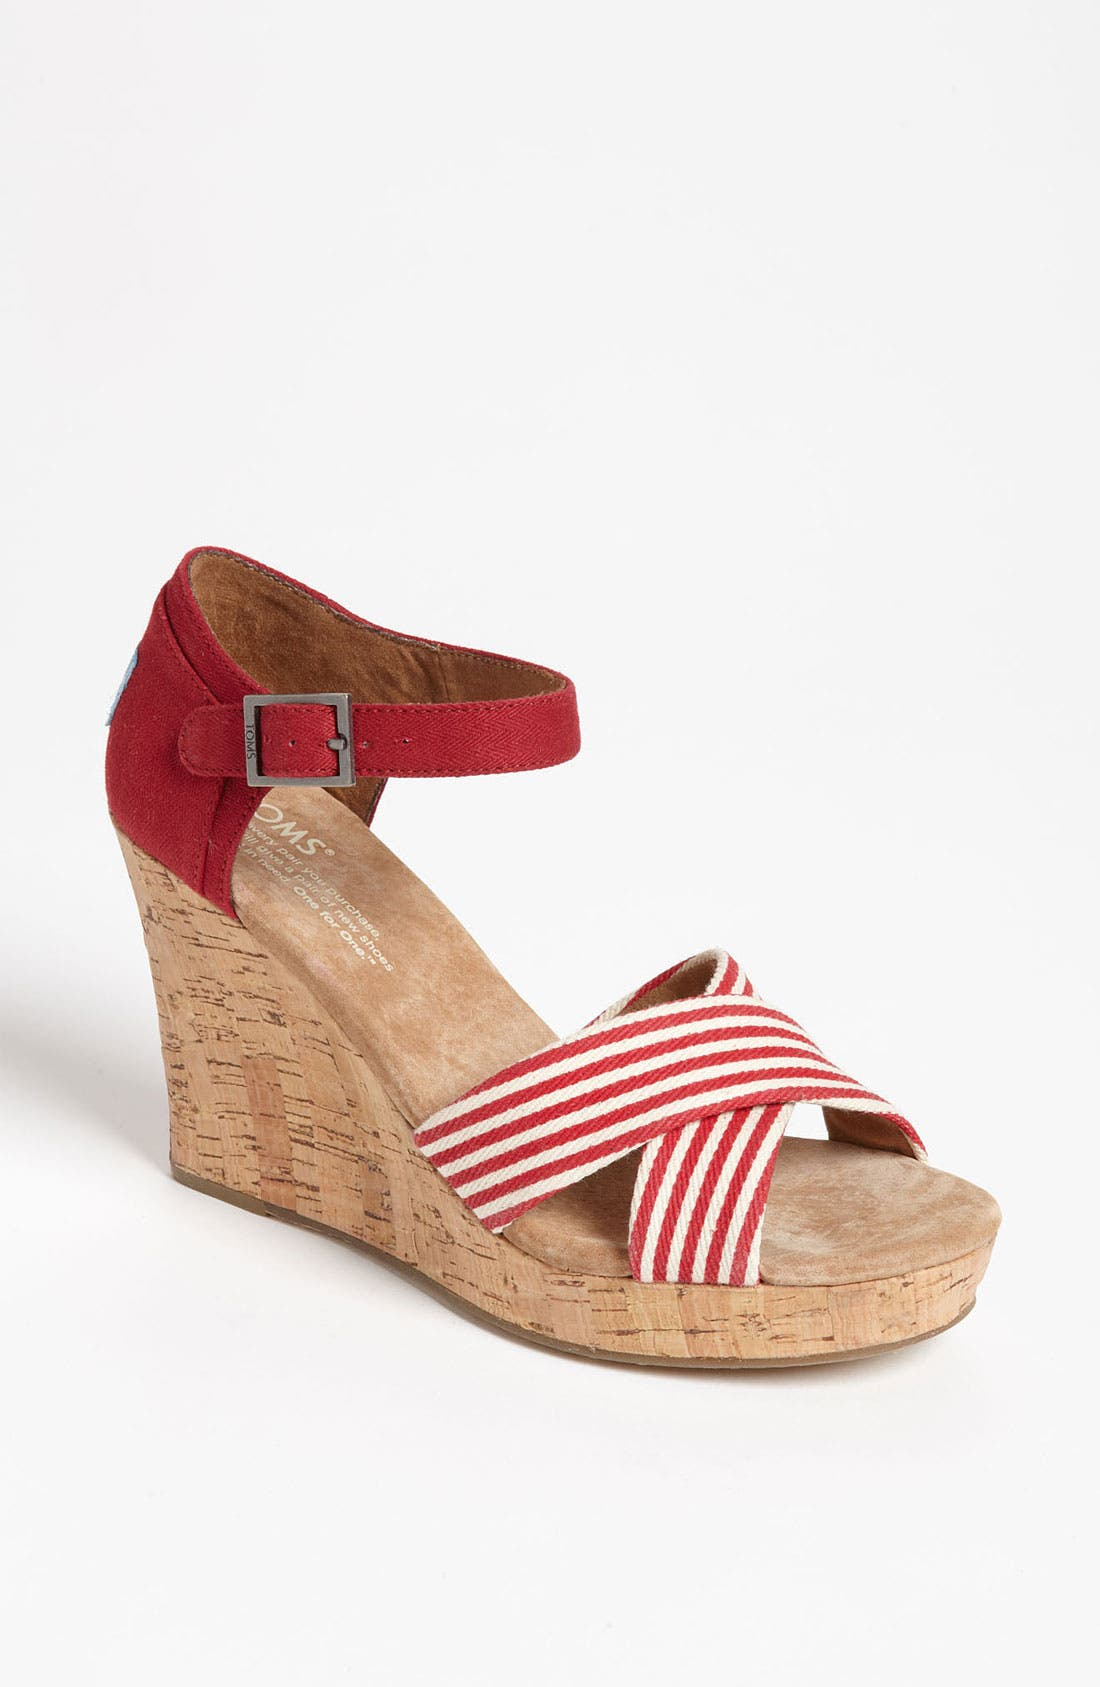 Alternate Image 1 Selected - TOMS 'University Stripe' Wedge Sandal